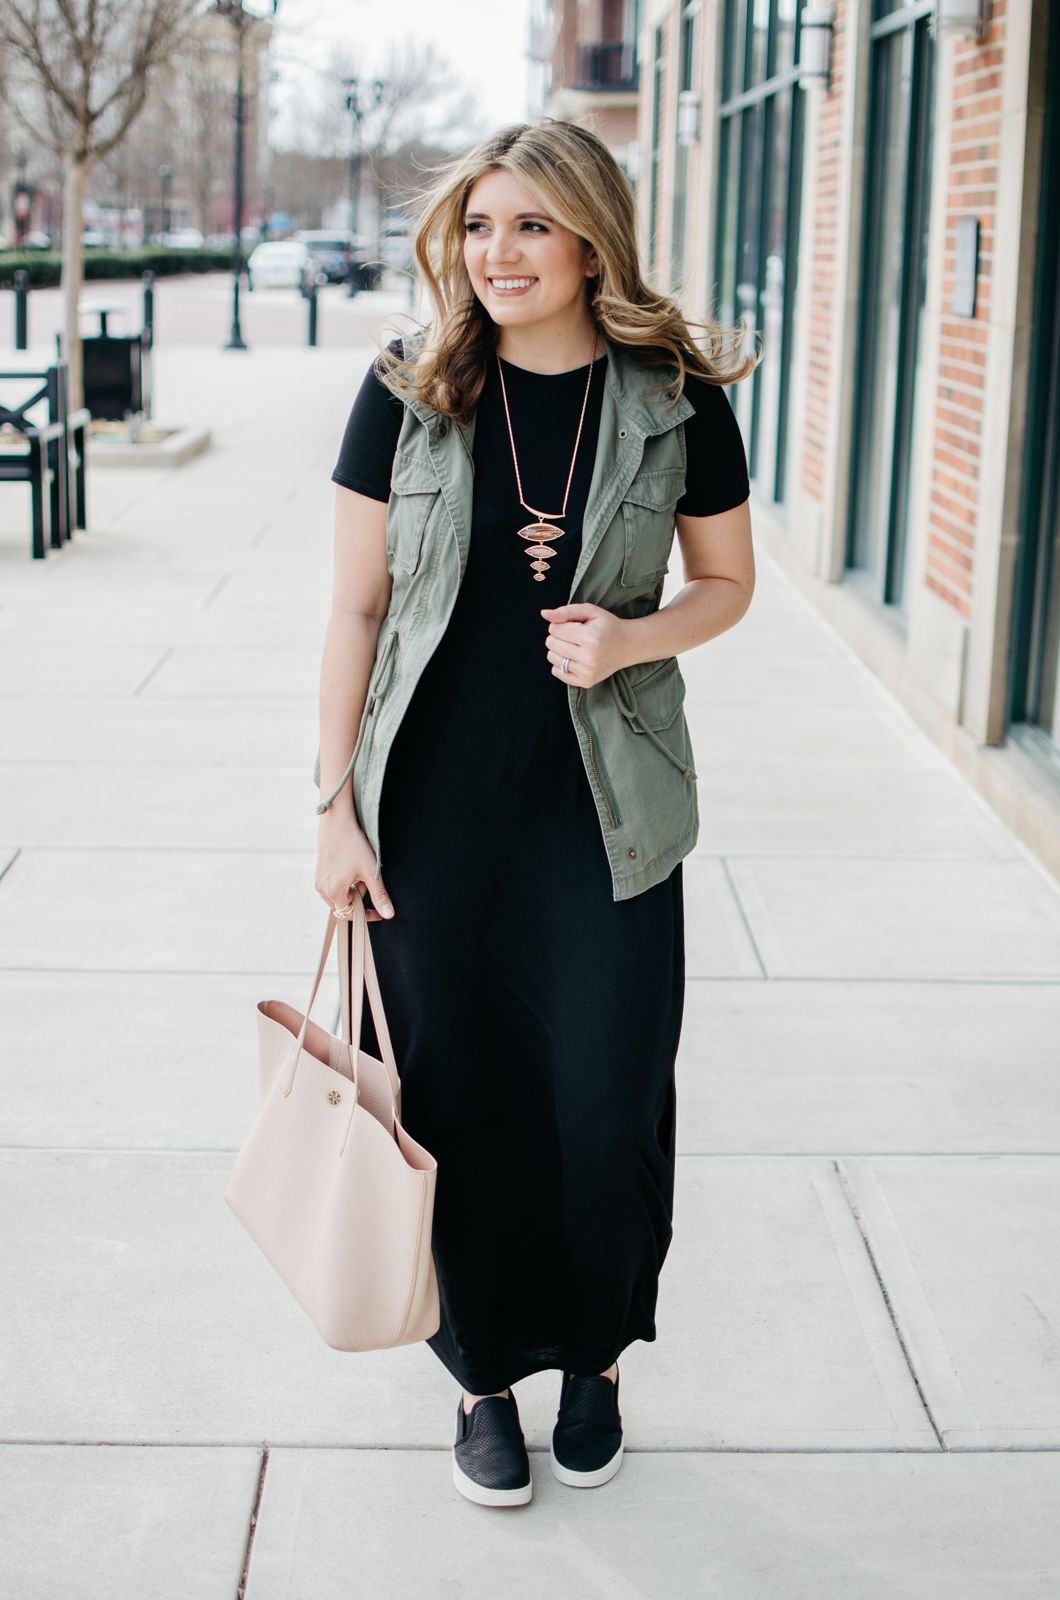 Maxi Dress Sneakers Outfit Cute Casual Outfit For Spring By Lauren M Dressy Outfits Dress With Sneakers Dress And Sneakers Outfit [ 1600 x 1060 Pixel ]